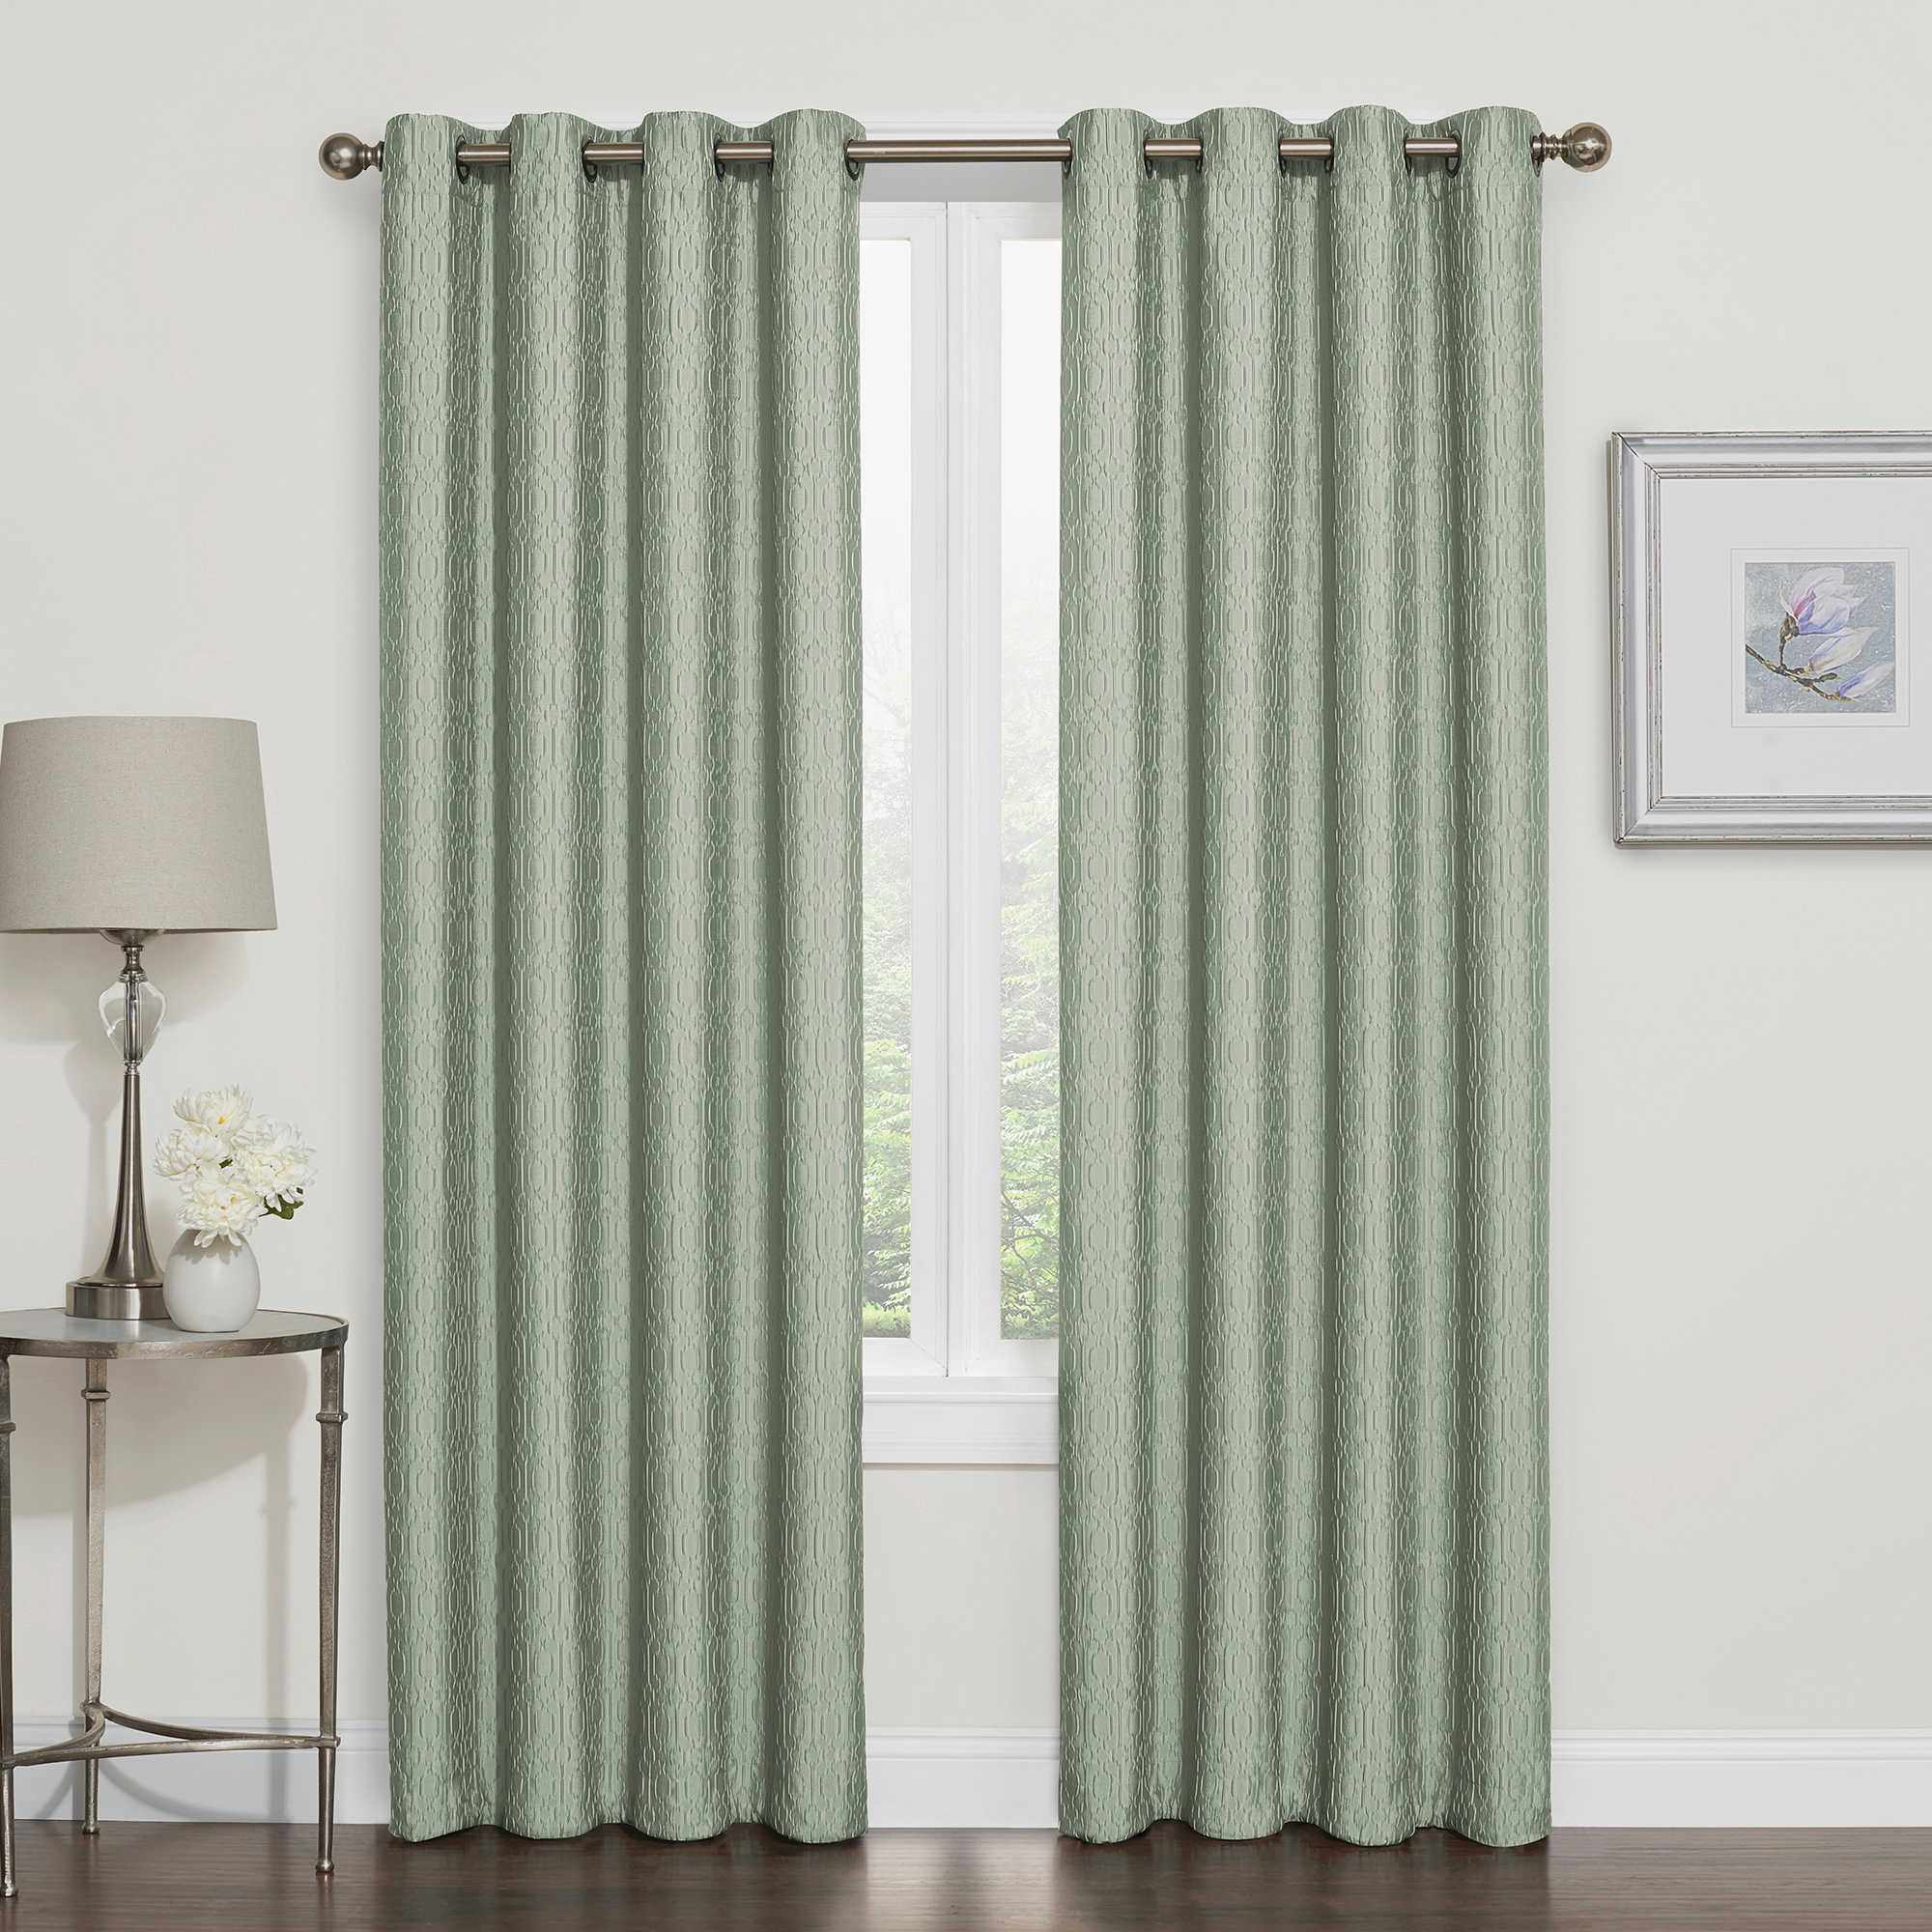 window blackout dollclique swing blinds ideas sears size intended curtain brackets and x curtains rods for rod com